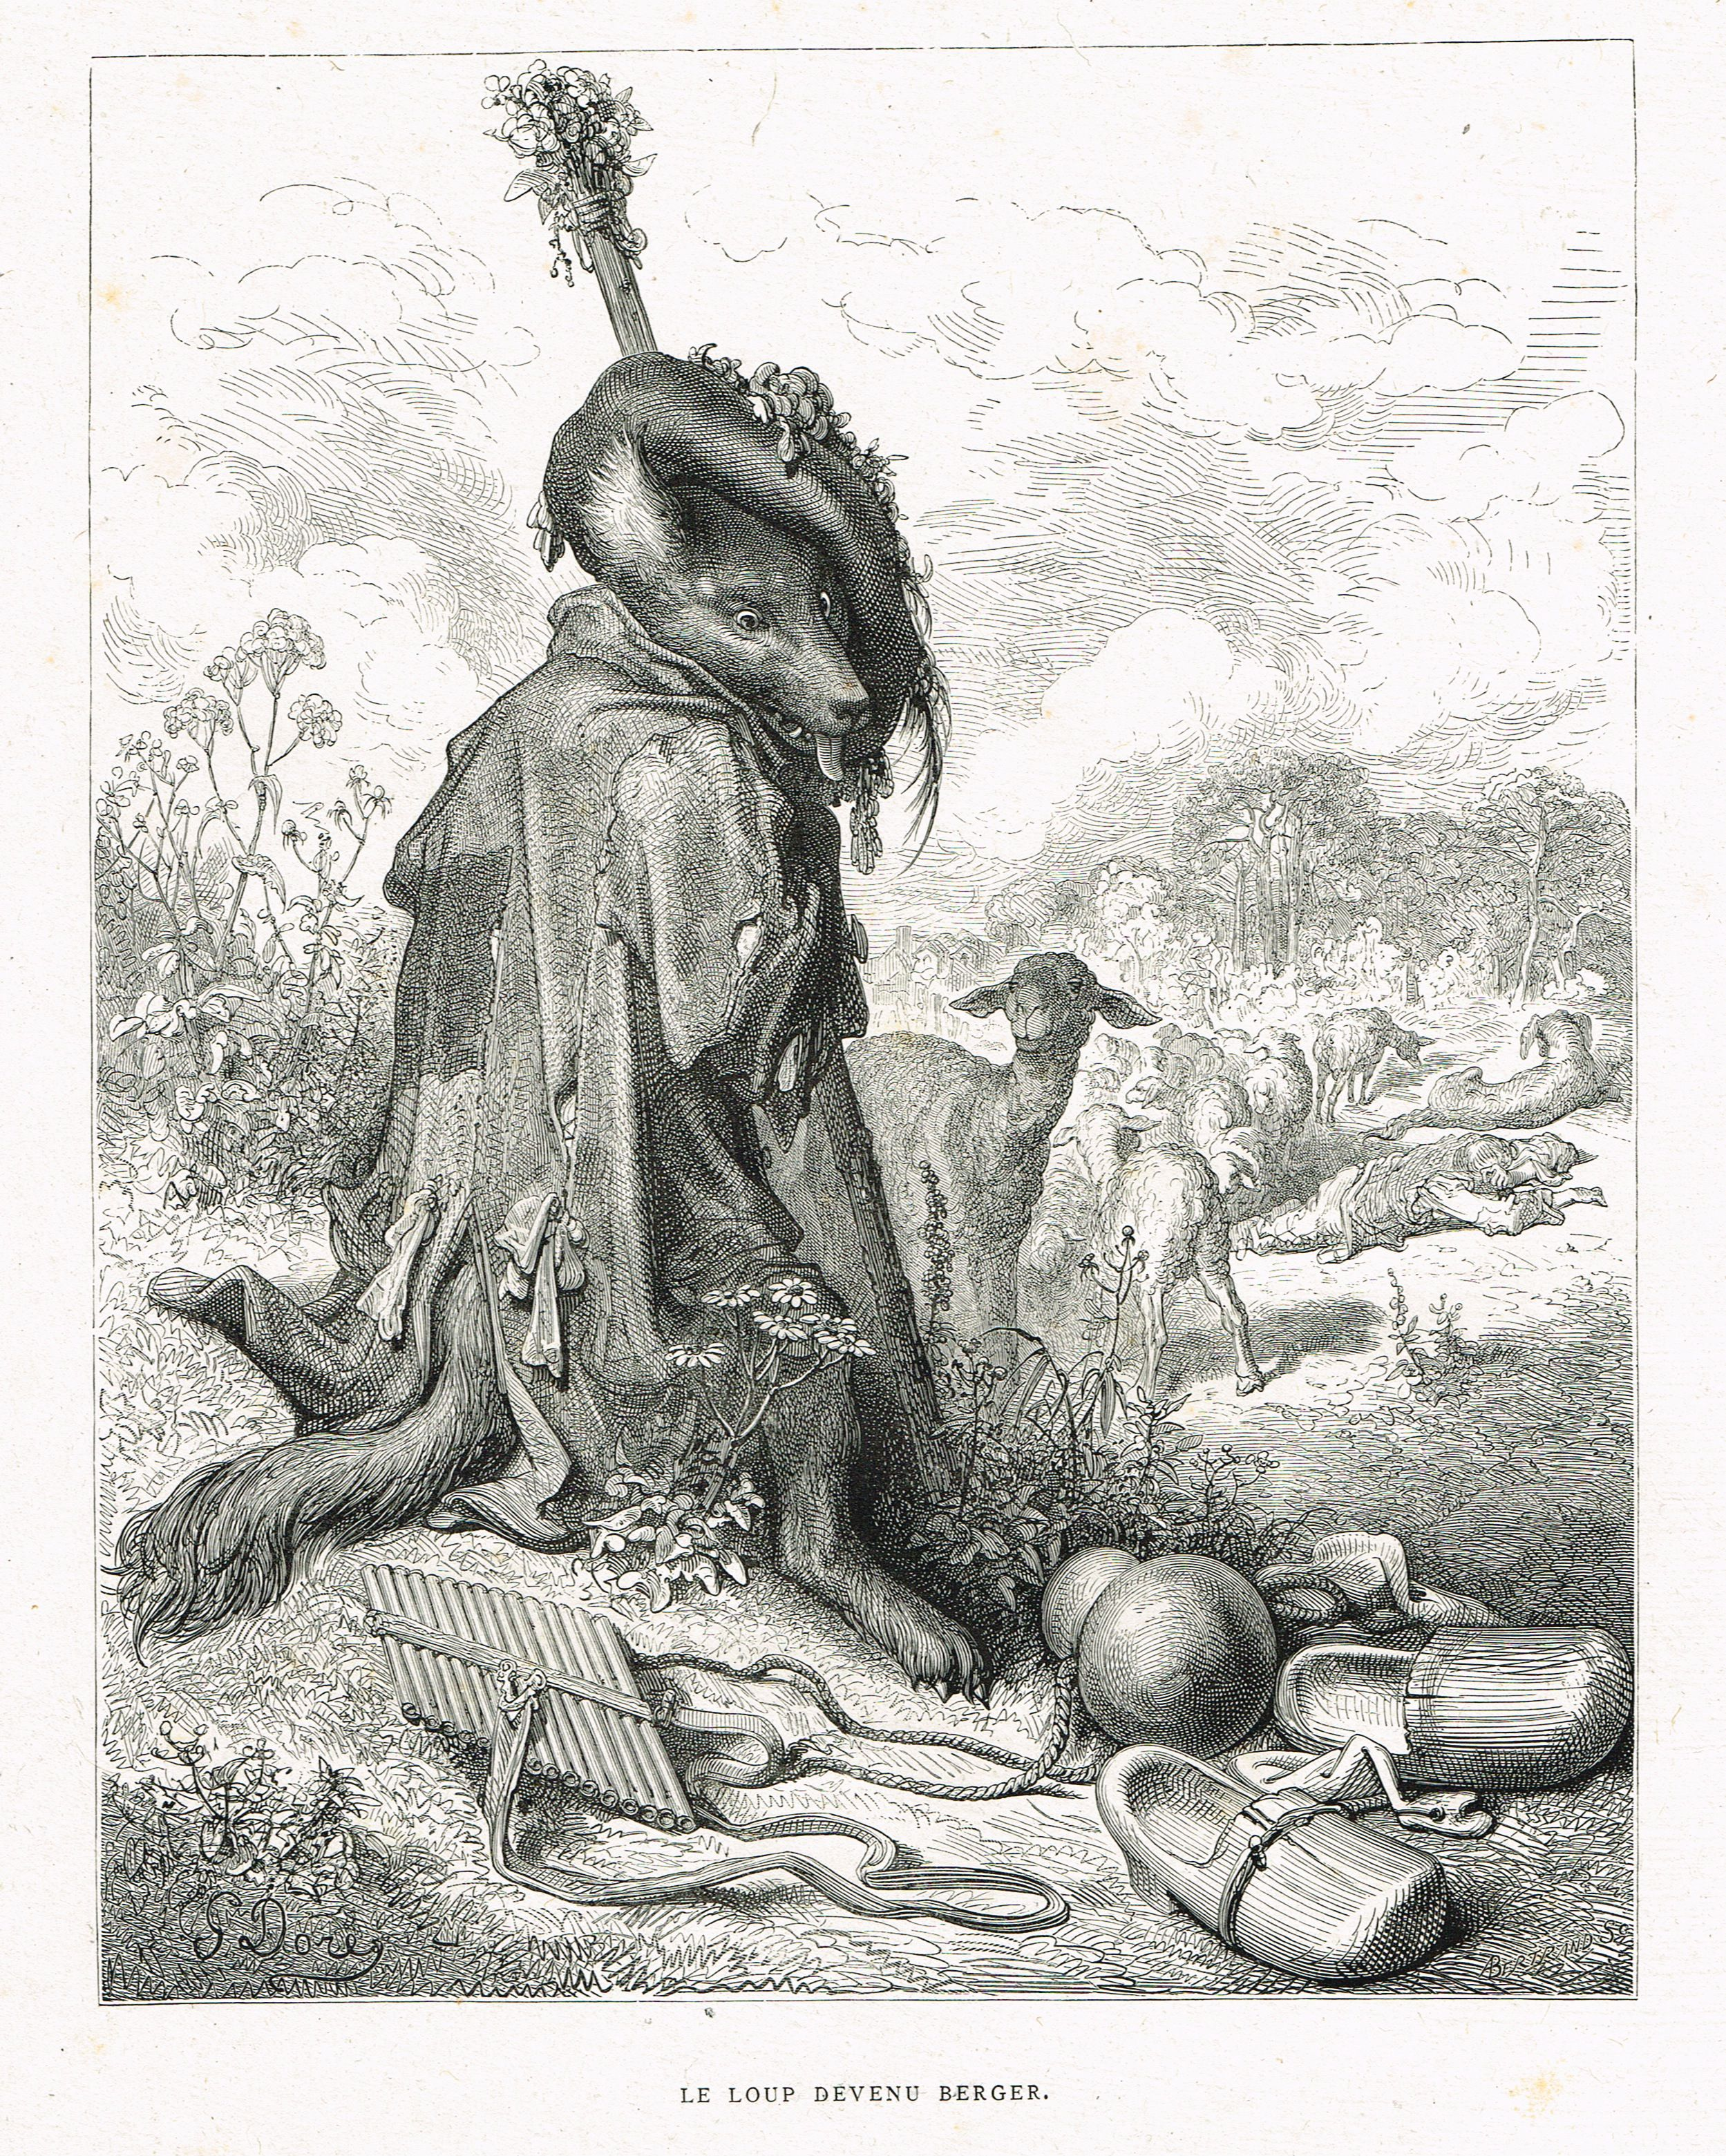 Le Loup Devenu Berger Fable De Jean De La Fontaine Illustree Par Gustave Dore Mas Estampes Anciennes Mas Antique Prints Gustave Dore Art Illustration